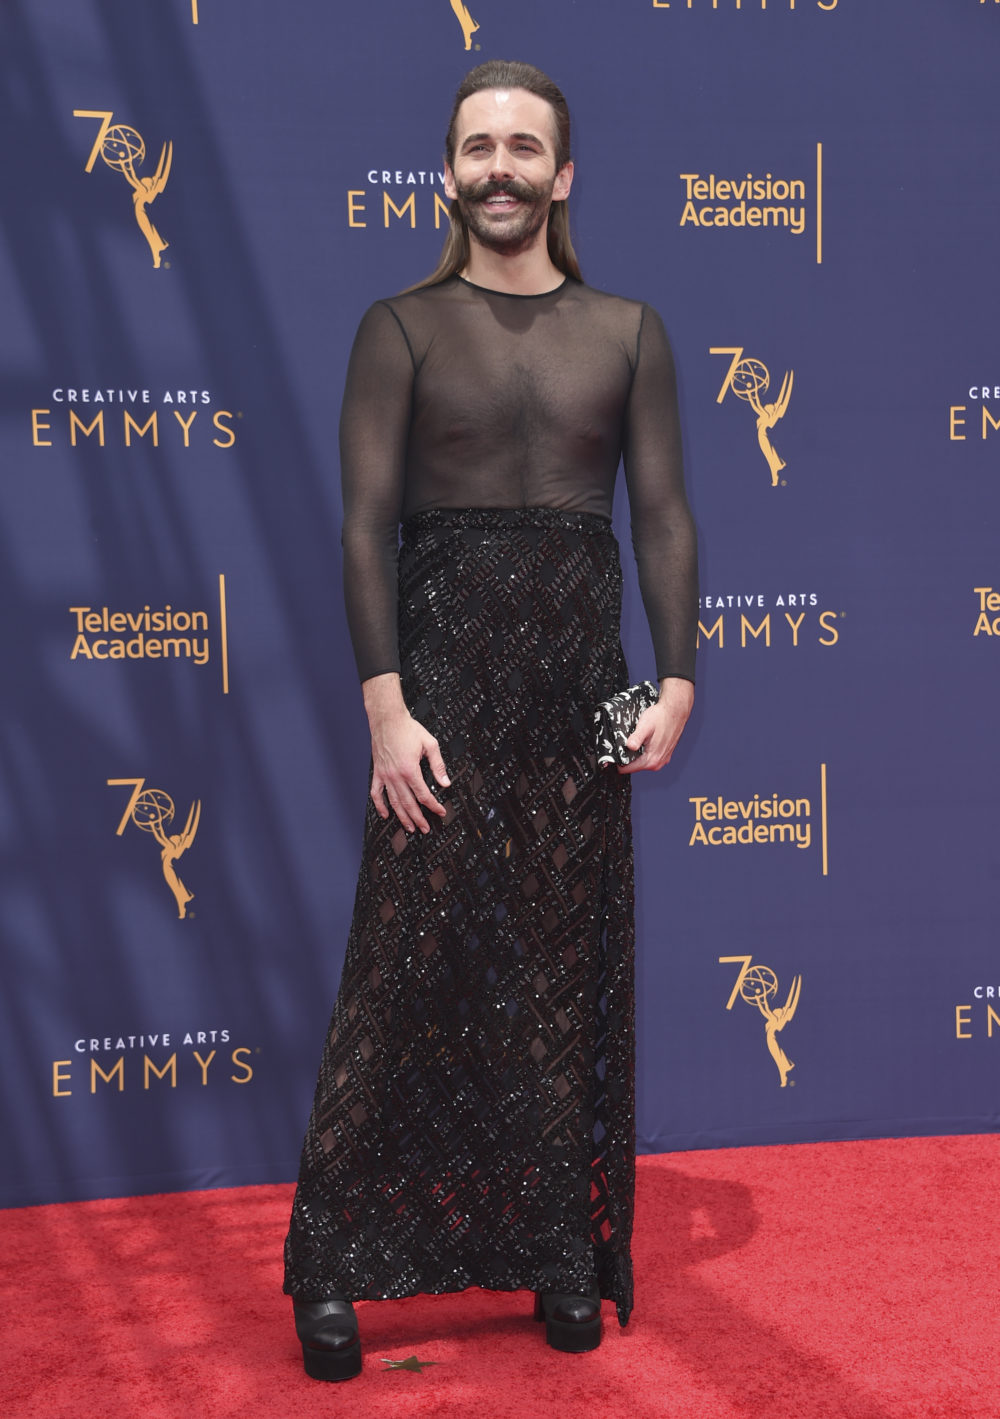 Jonathan Van Ness arrives at night two of the Creative Arts Emmy Awards on Sunday, Sept. 9, 2018, in Los Angeles. (Richard Shotwell/Invision/AP)